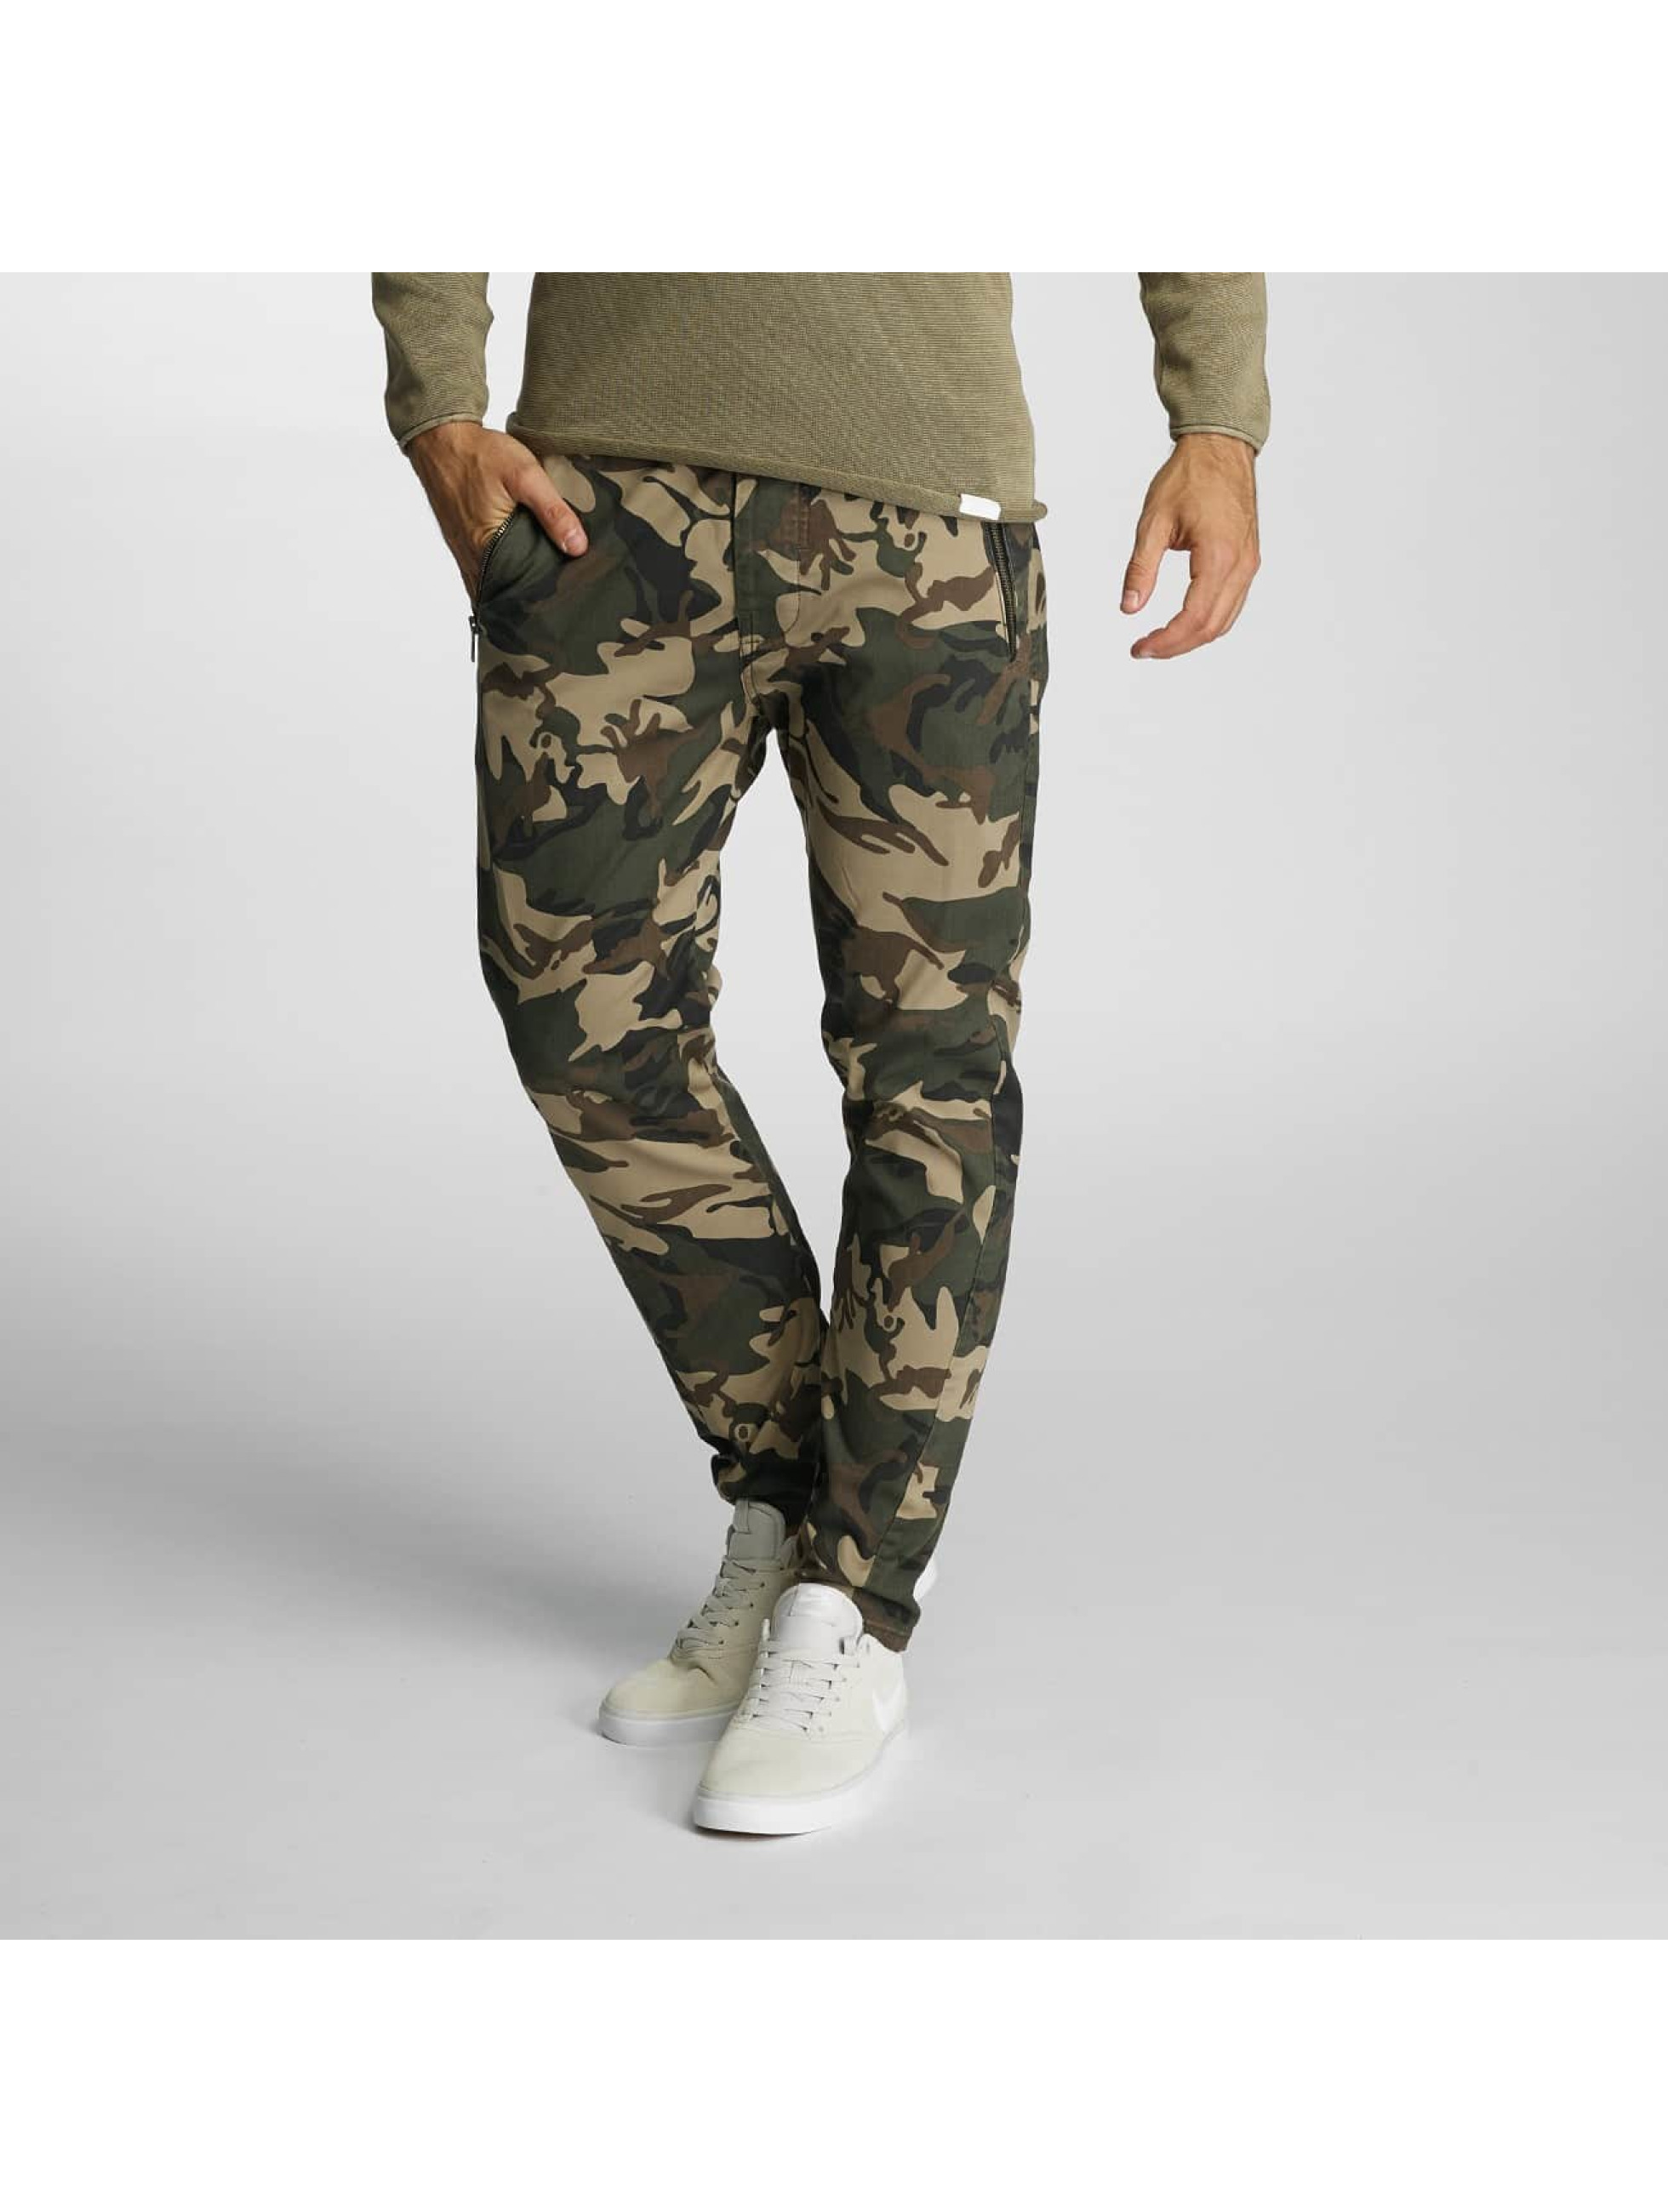 SHINE Original Männer Chino Russel Drop in camouflage